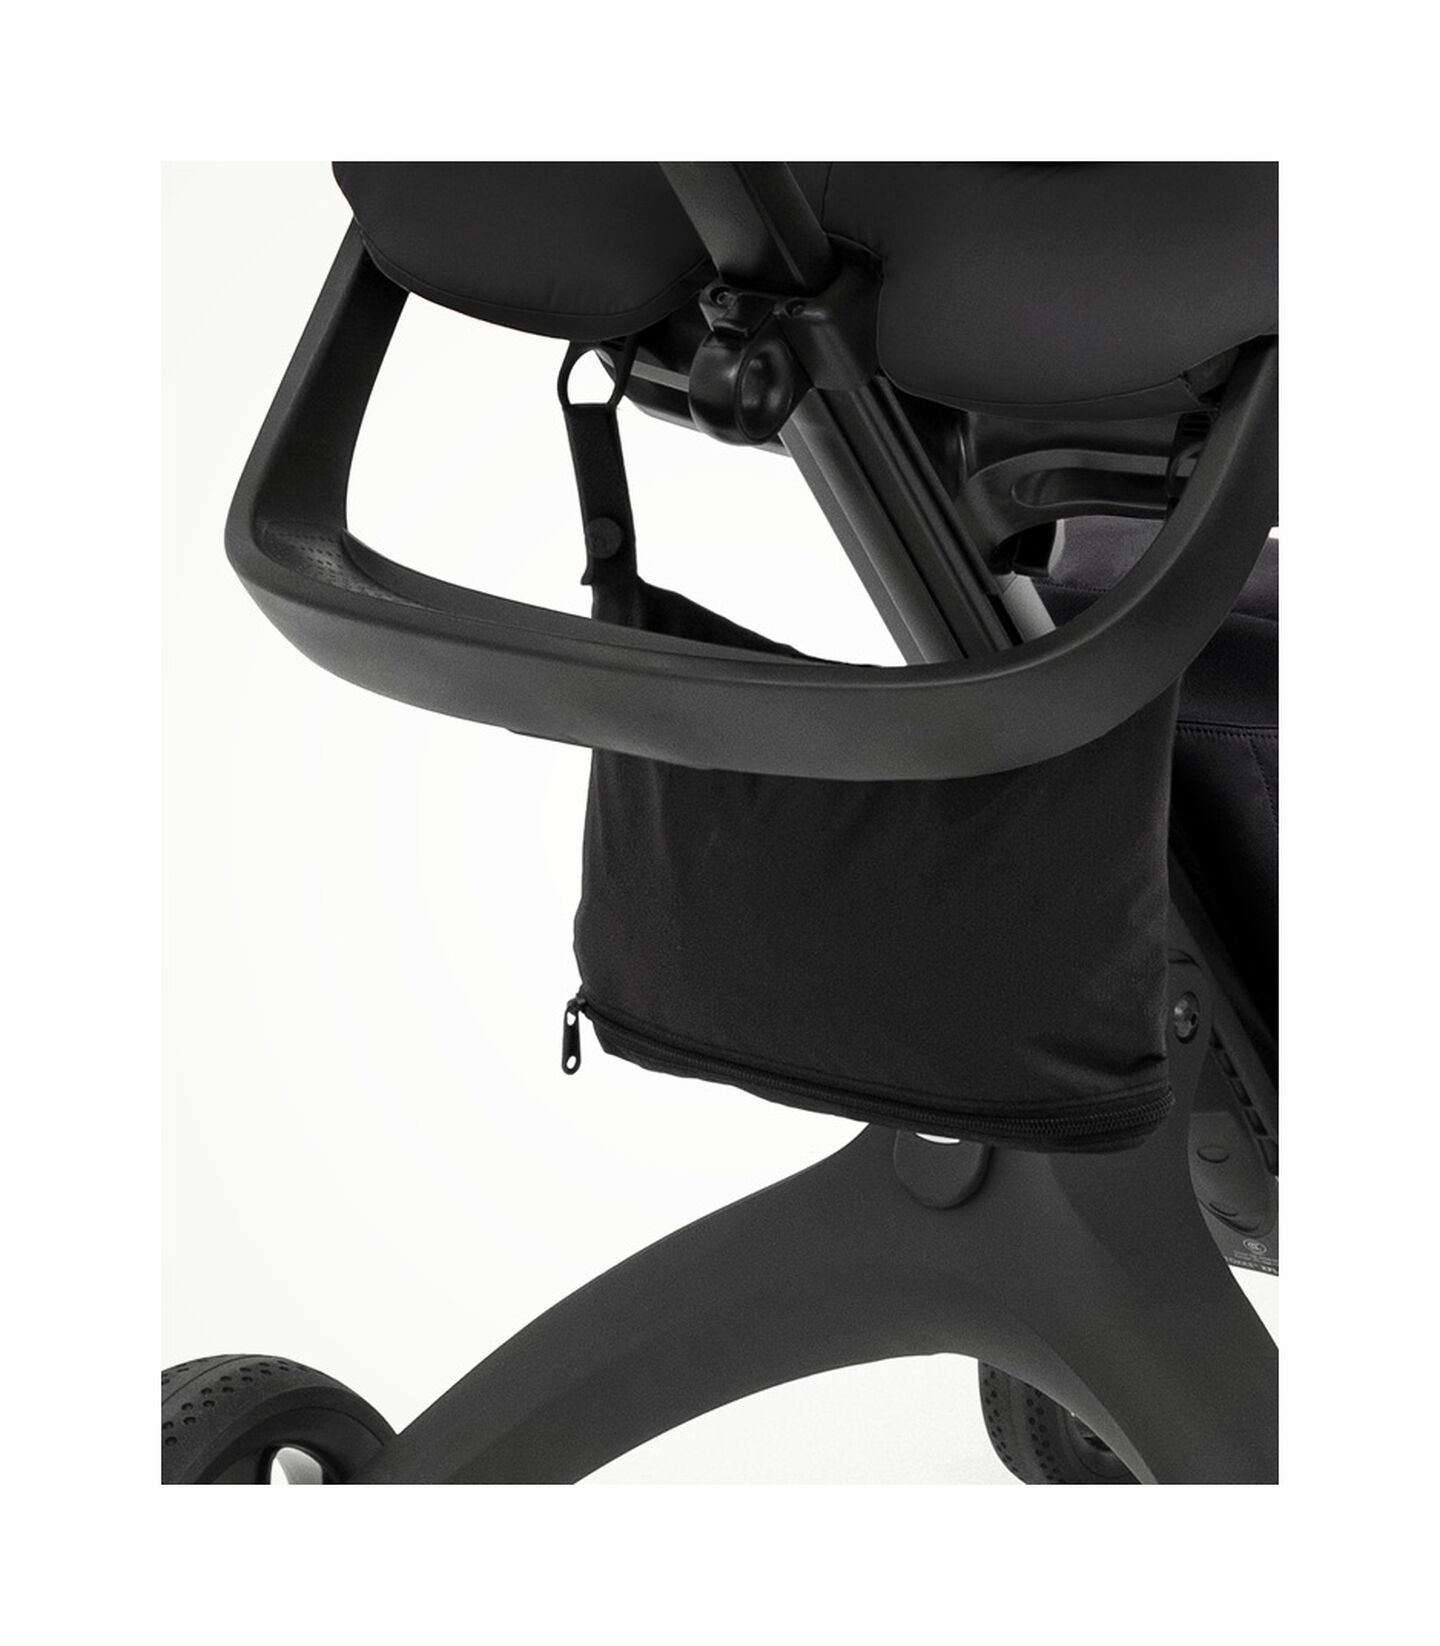 Stokke® Xplory® X Rain Cover Black, Black, mainview view 2